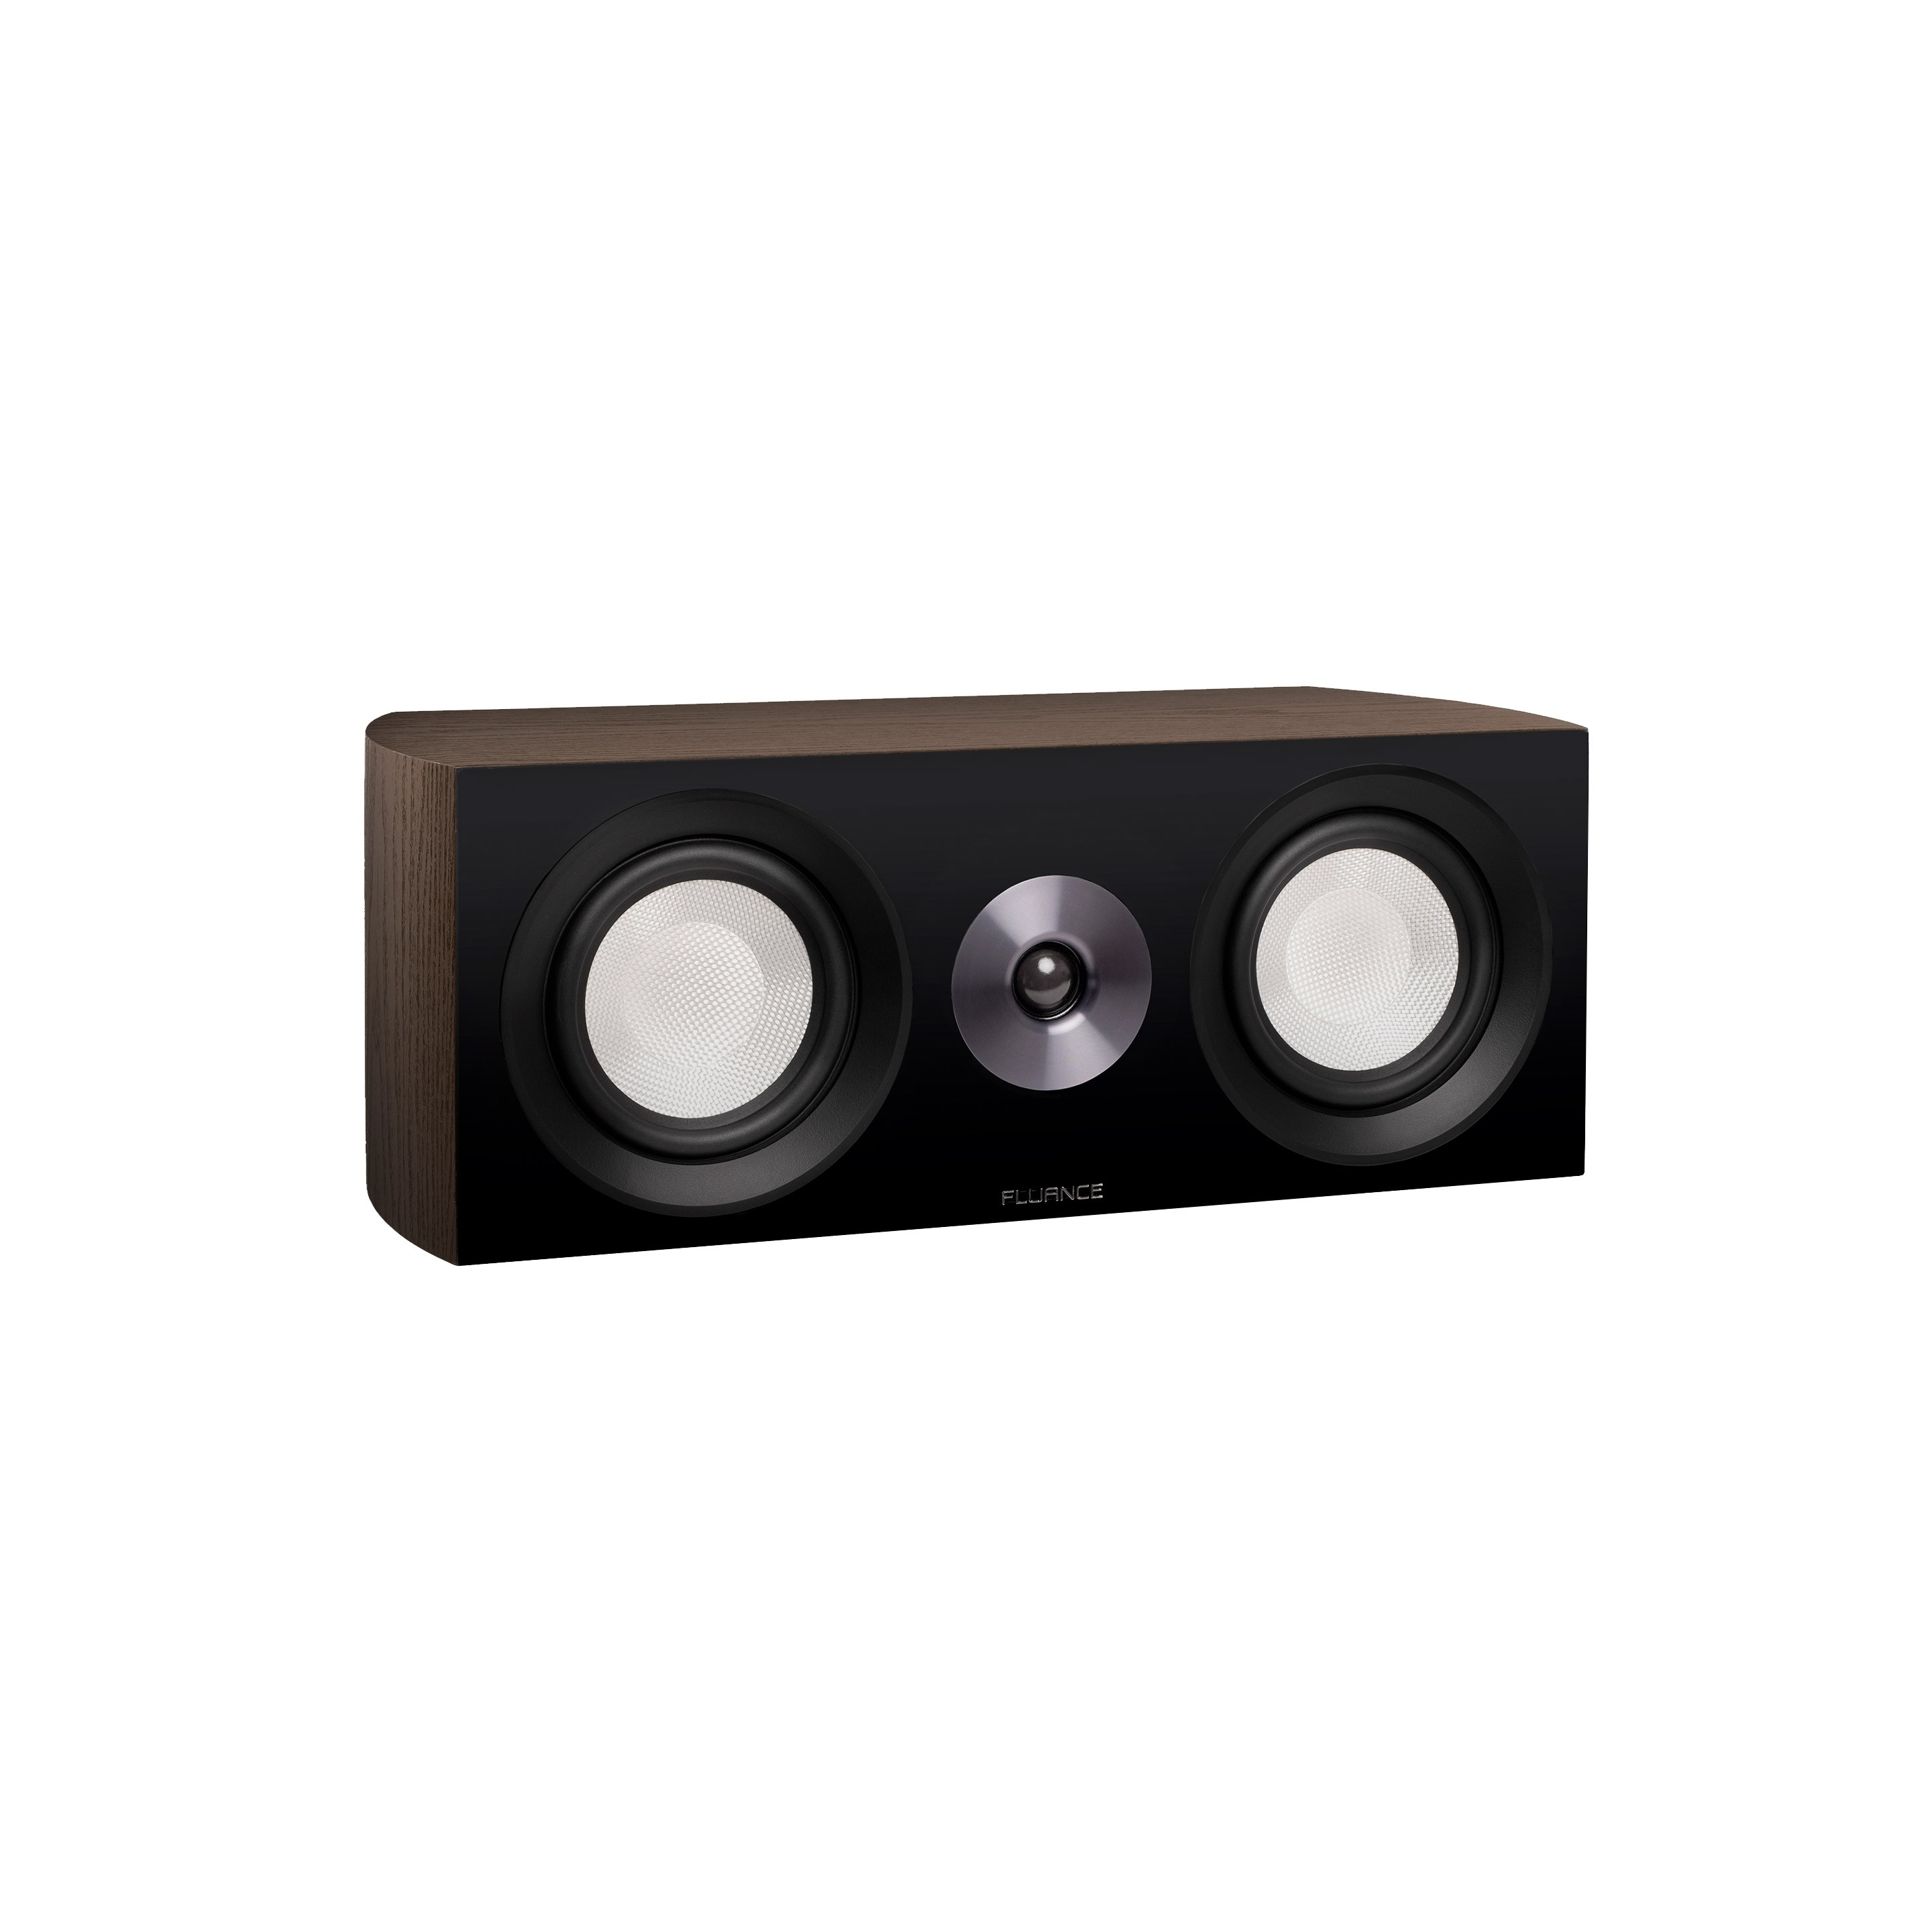 XL8CW High Performance Two-Way Center Channel Speaker